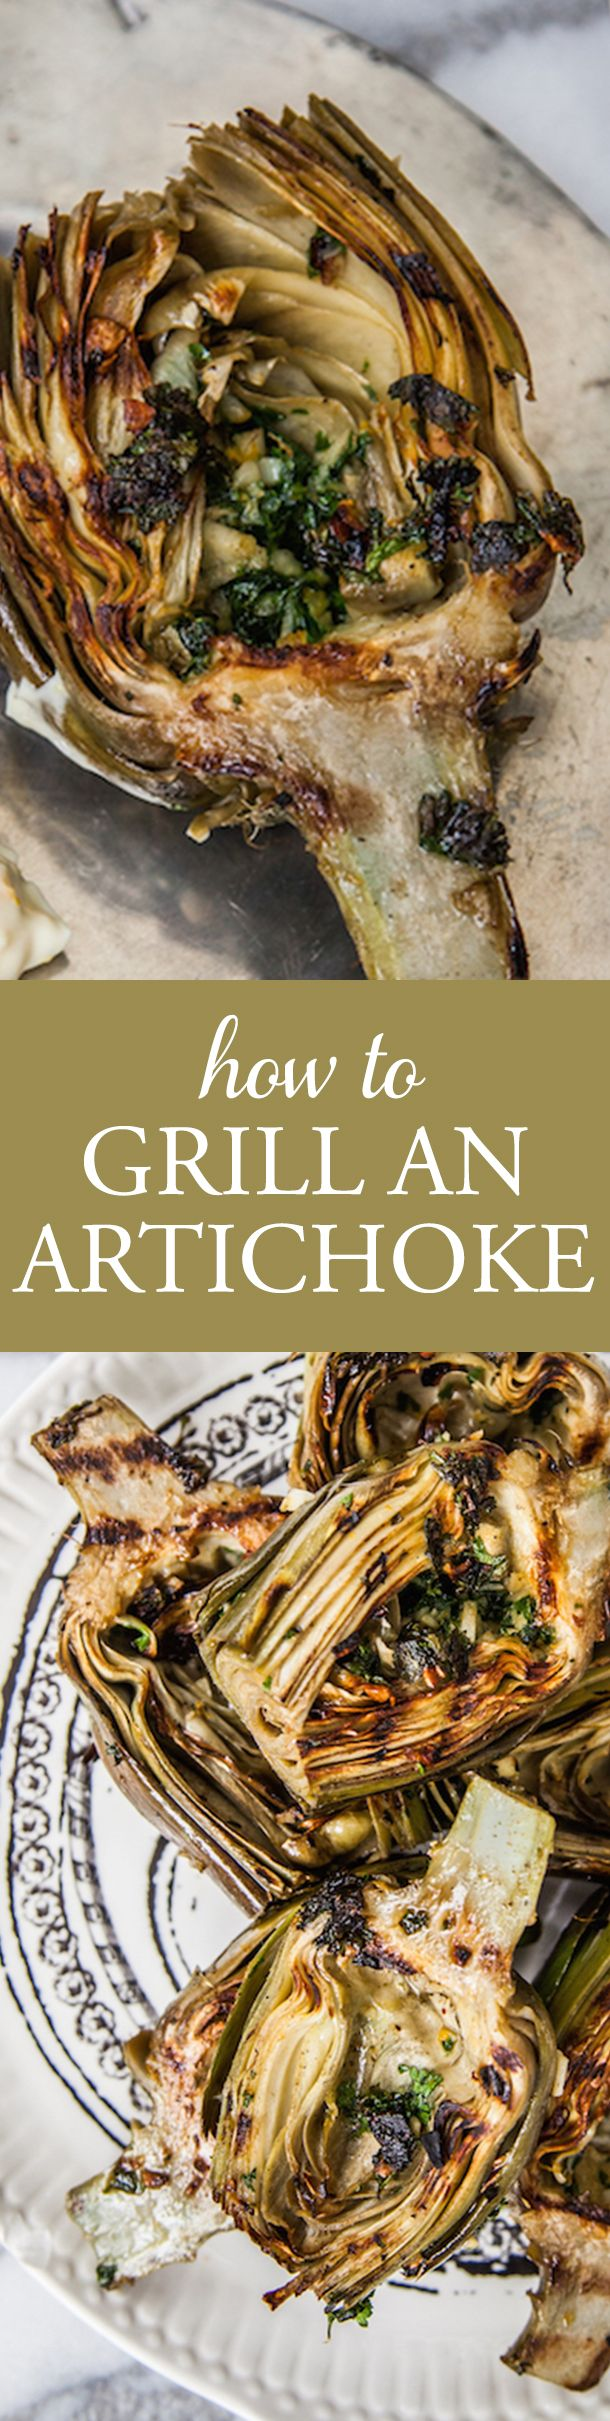 This is the best way to grill an artichoke and add the most amazing flavor!